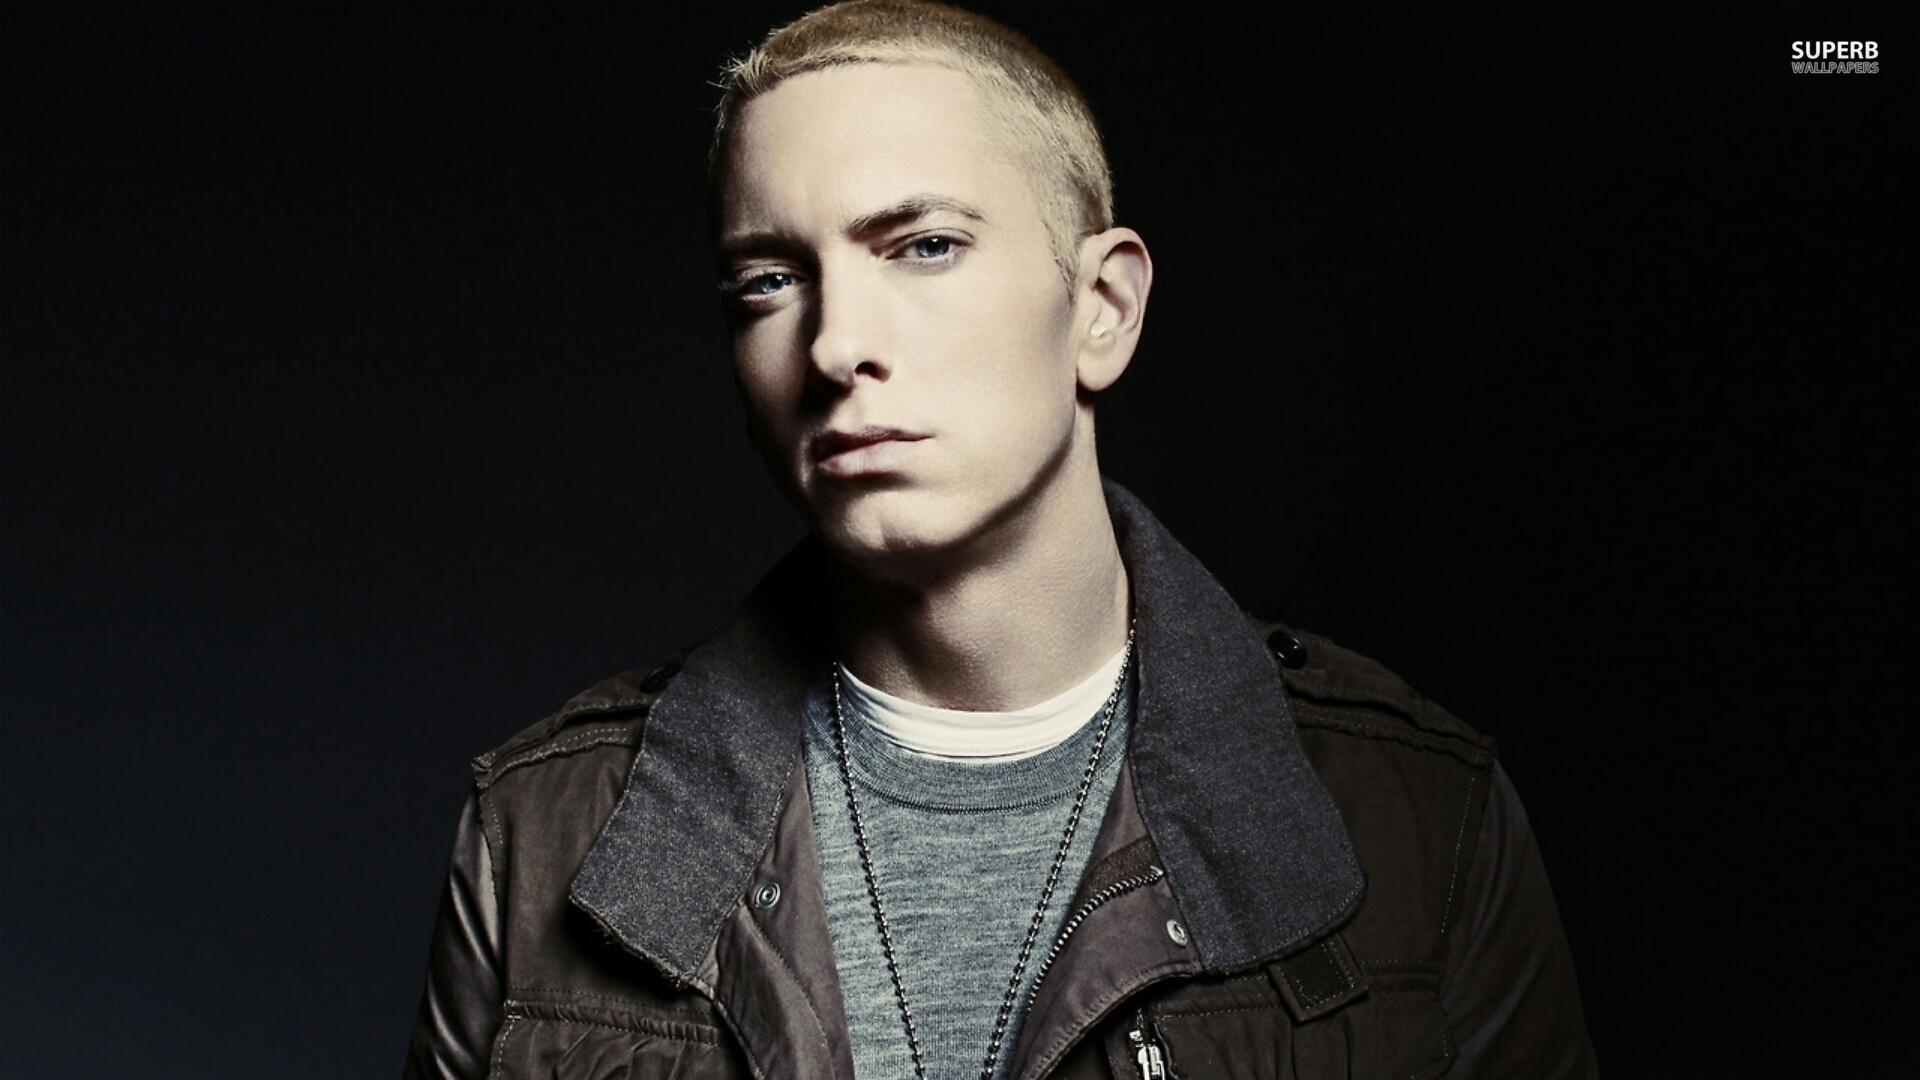 Eminem wallpaper 1920x1080 jpg